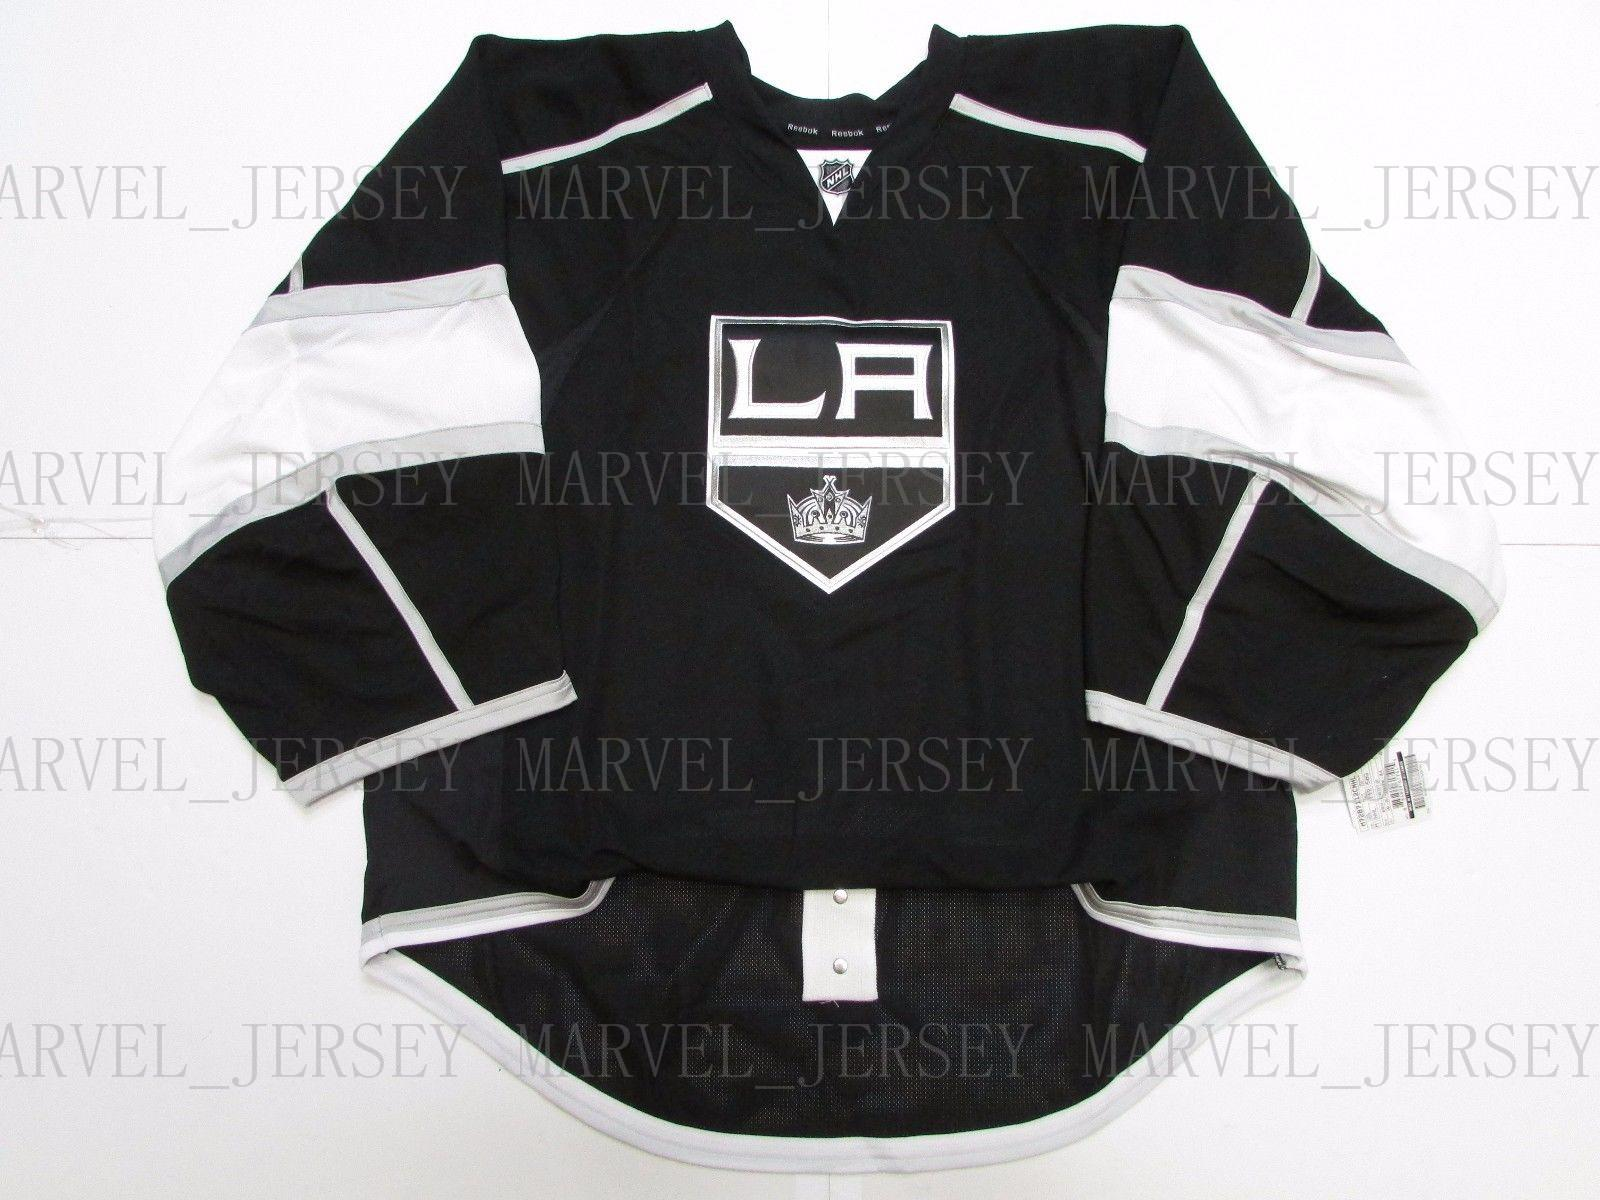 e6a6f5ee0 2019 Cheap Custom LOS ANGELES KINGS HOME JERSEY GOALIE CUT 58 Stitch Add  Any Number Any Name Mens Hockey Jersey From Marvel jersey